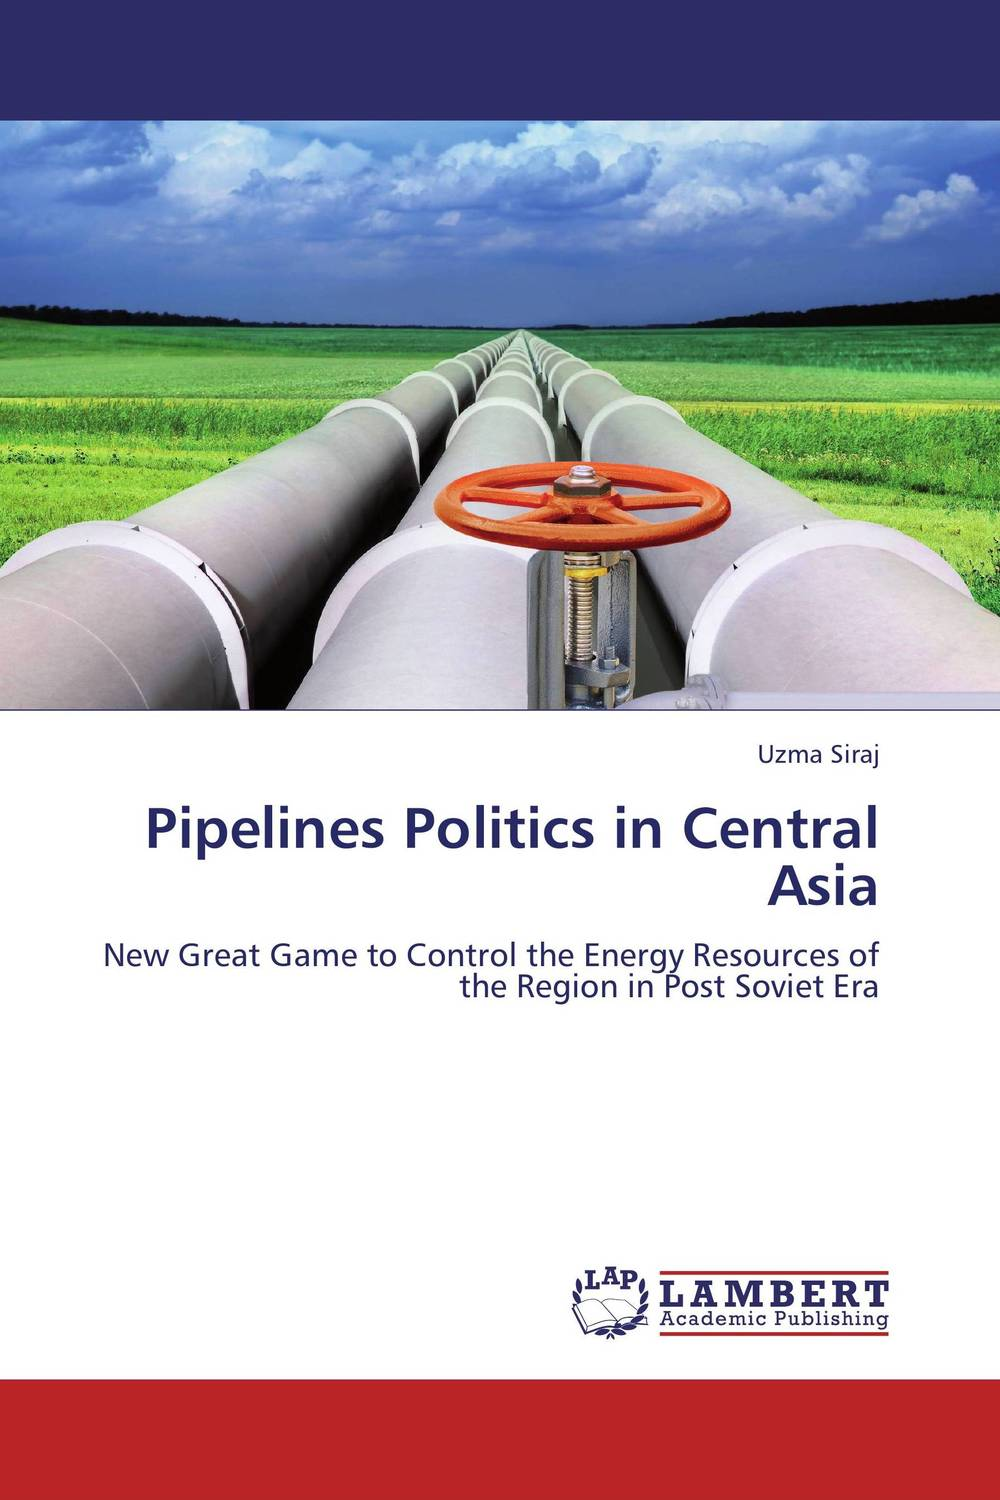 Pipelines Politics in Central Asia development of ghg mitigation options for alberta's energy sector